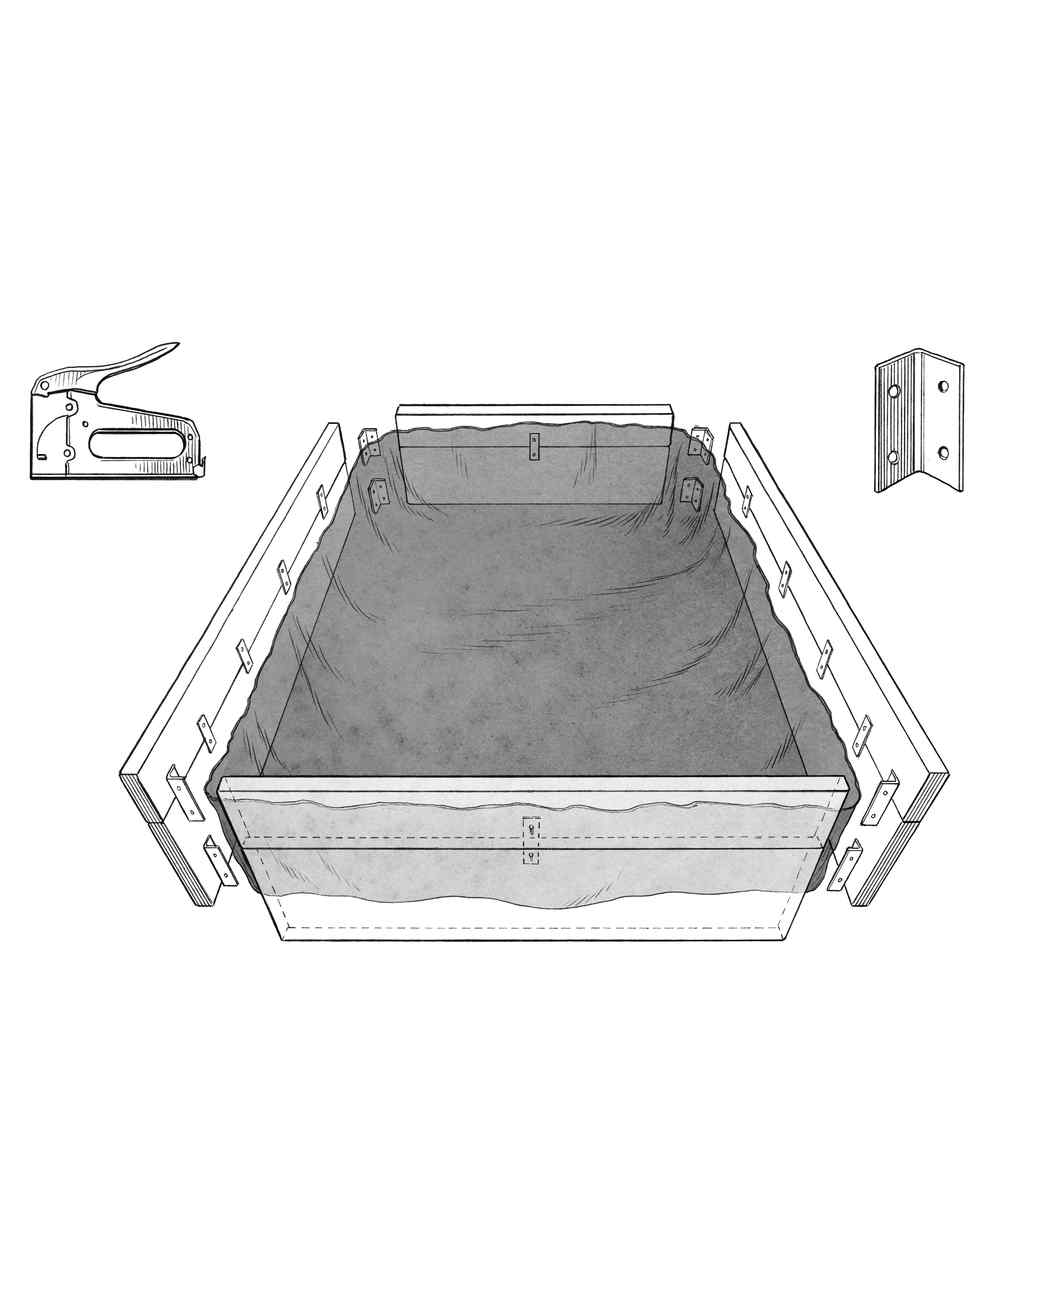 how to build a raised garden bed martha stewart pallet raised garden bed diagram of raised garden bed [ 1040 x 1300 Pixel ]